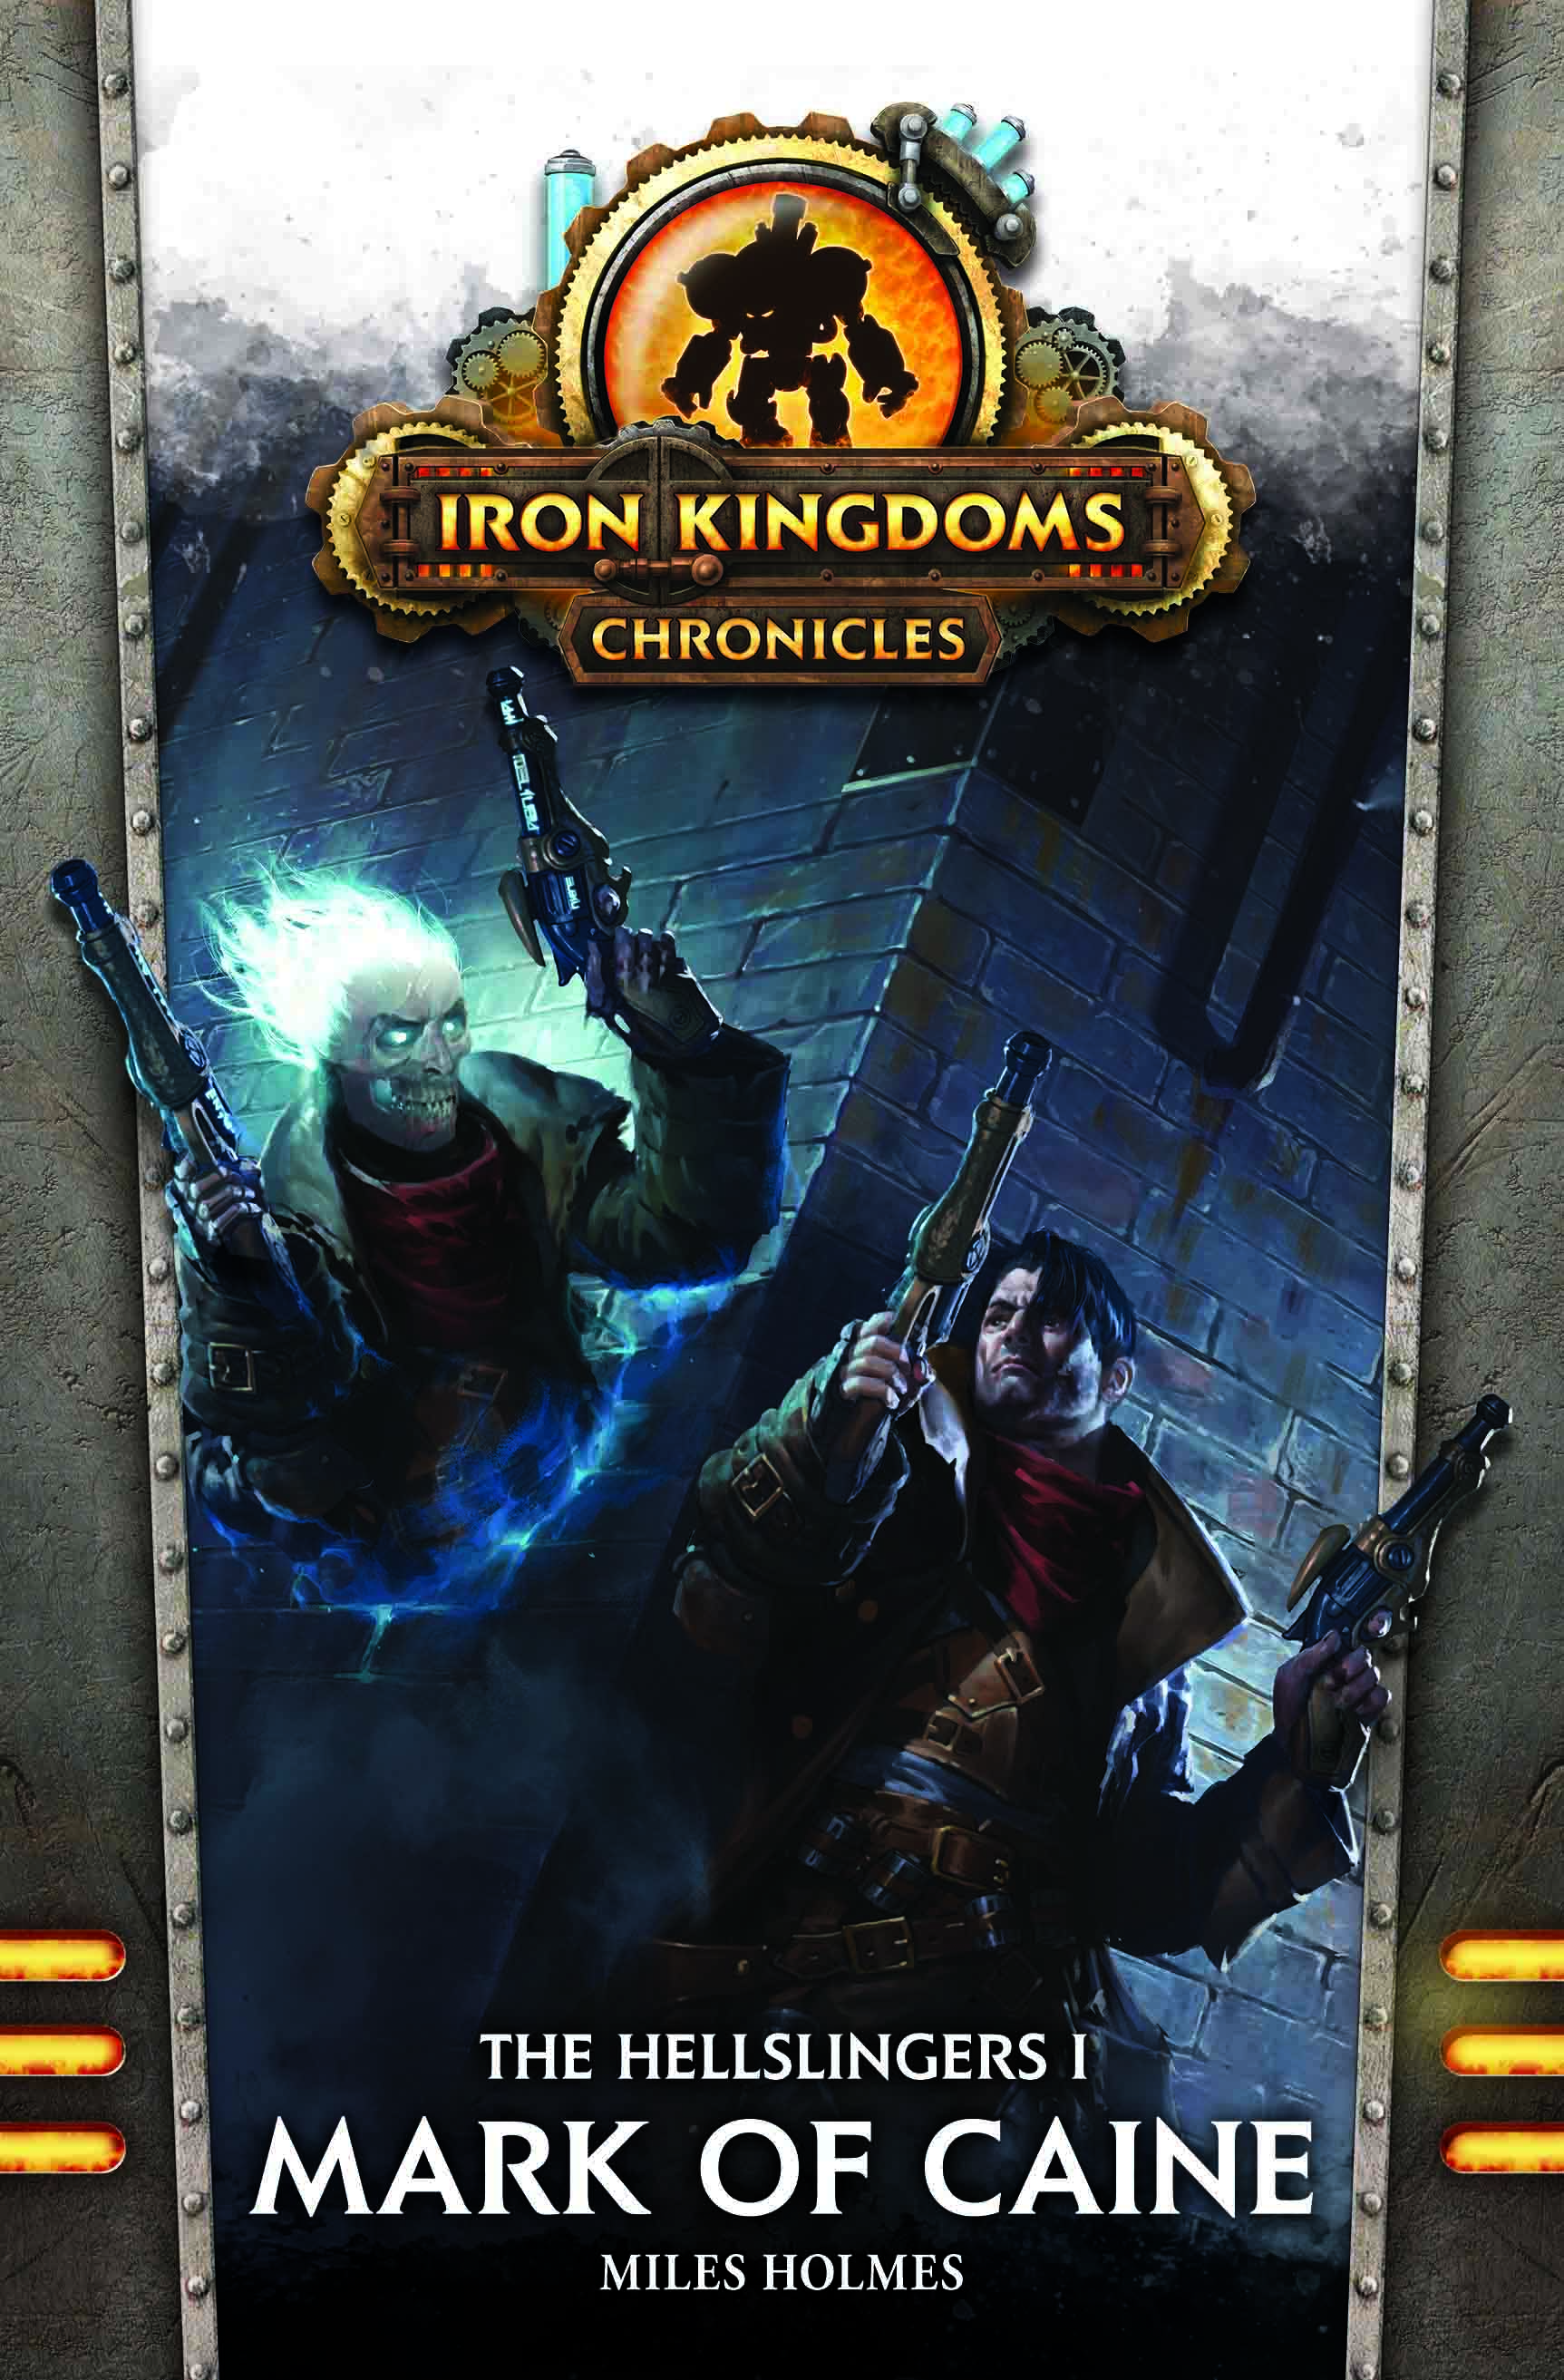 Iron Kingdoms (Novel): Mark of Caine